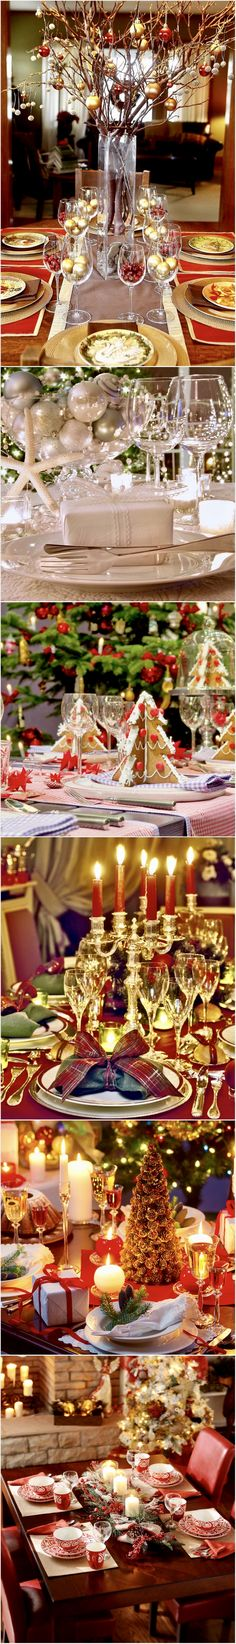 Christmas Table Decorations and Centerpiece Ideas #tablescapes